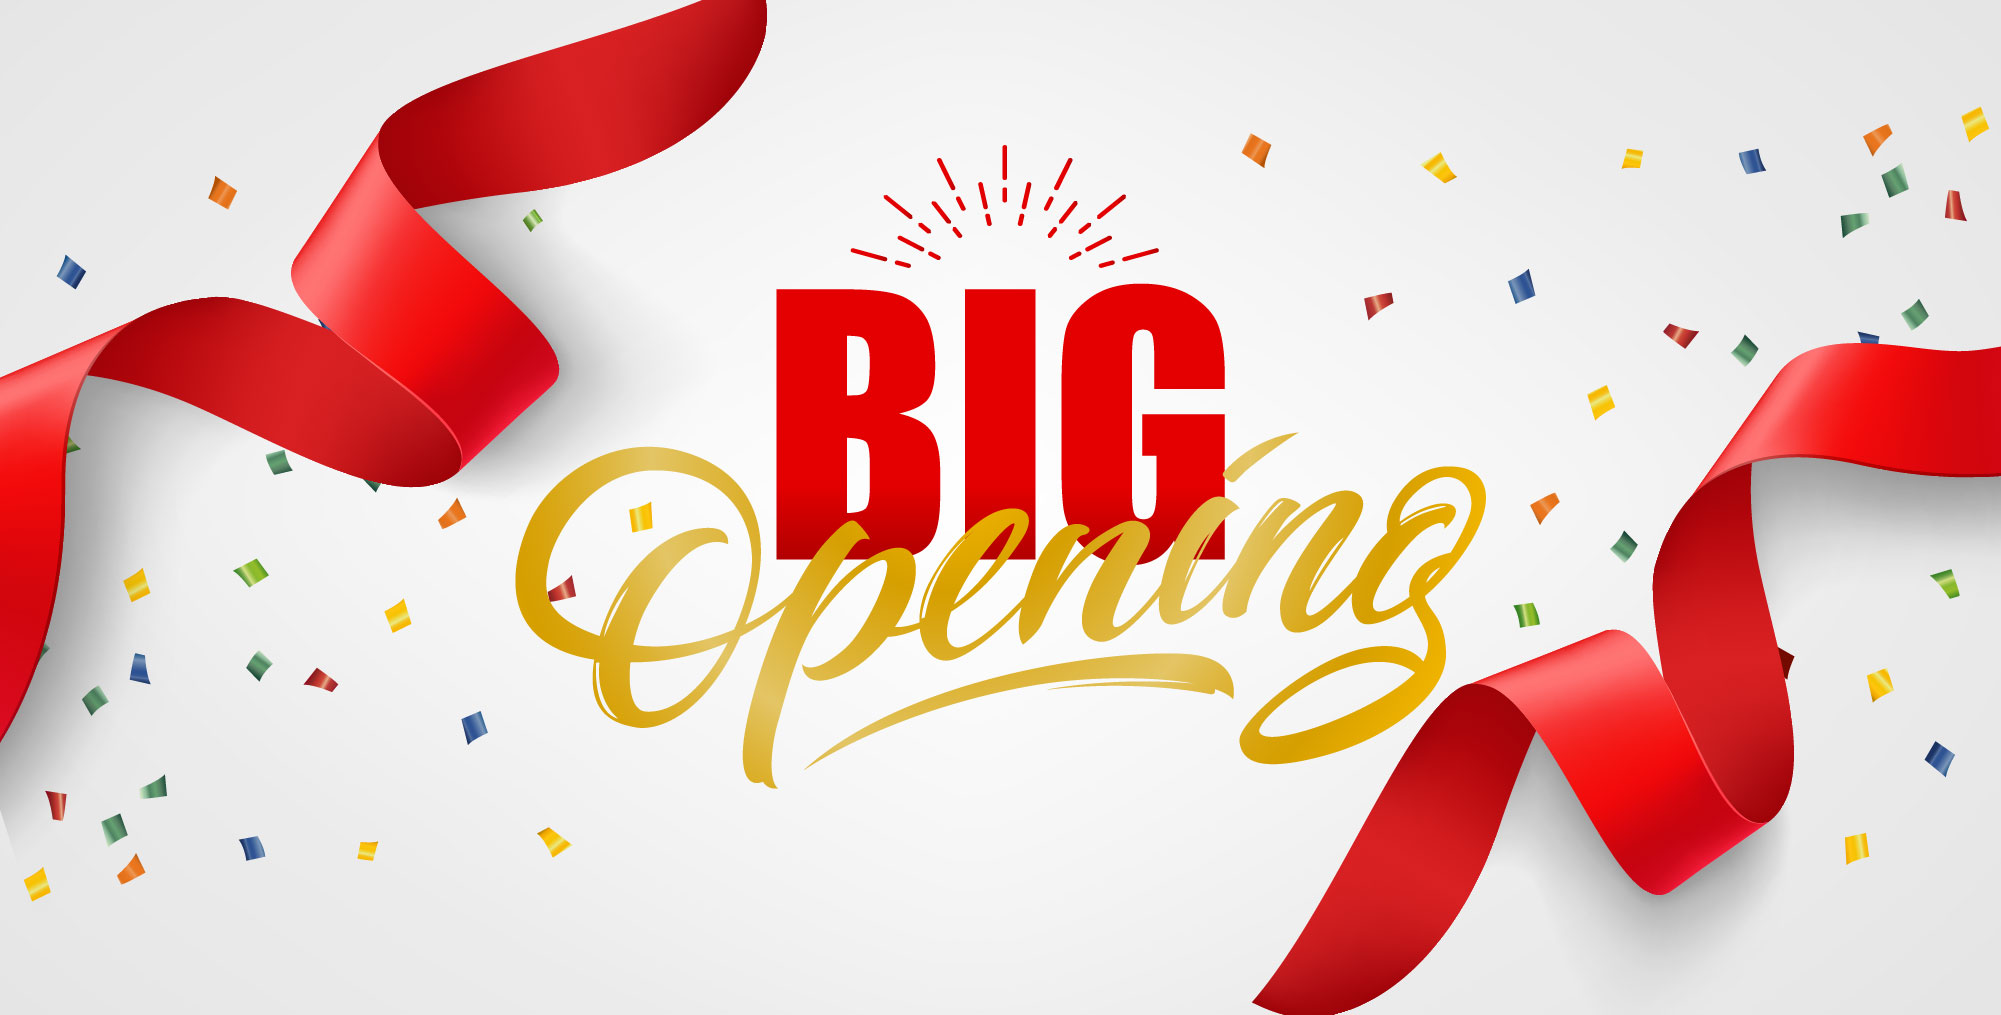 Big Opening in 1090 Wien am 31.01.20!